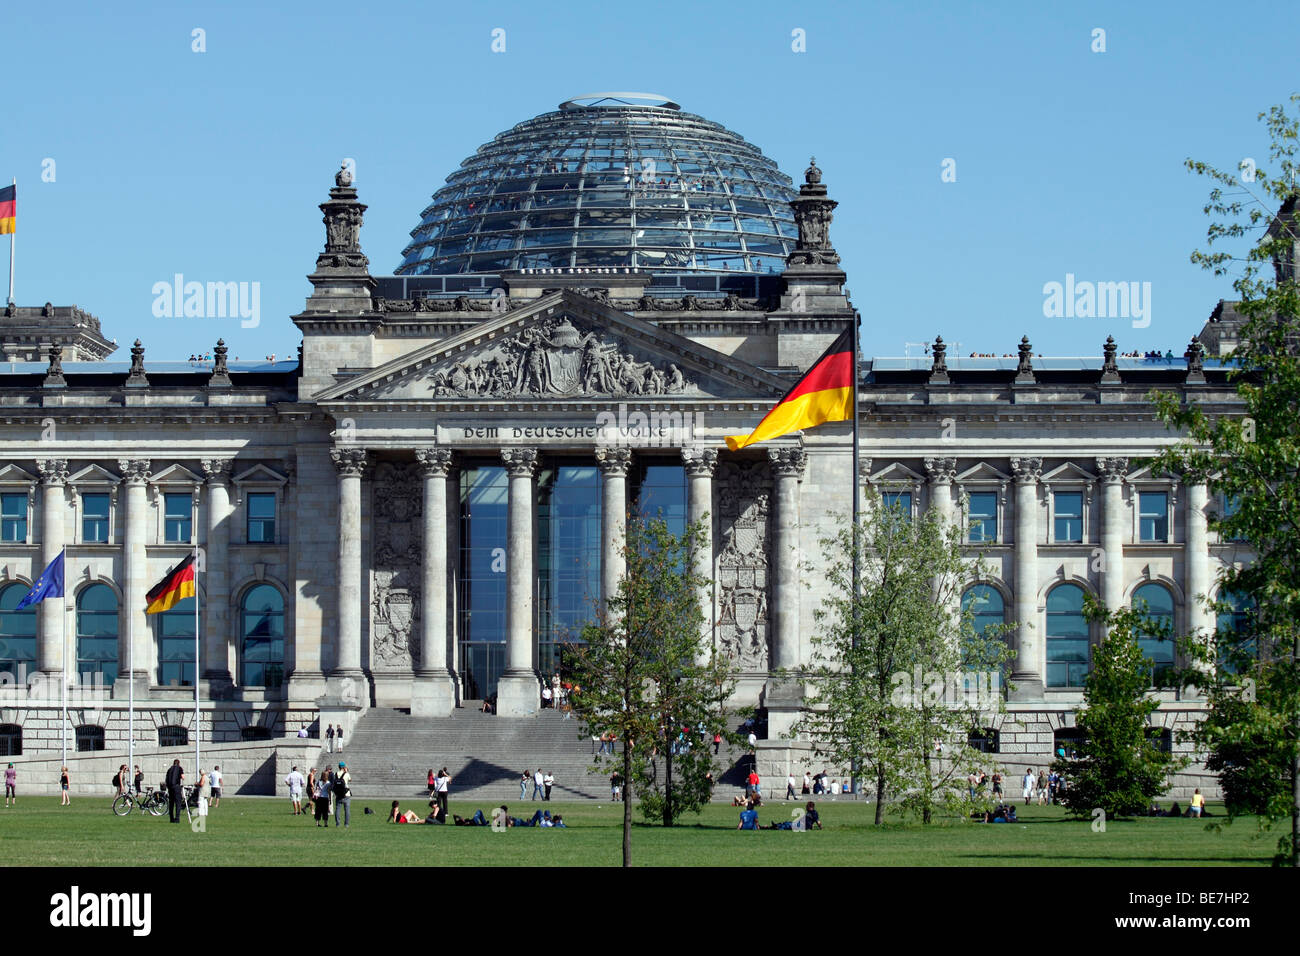 berlin the reichstag building eu de deu ger germany capital stock photo royalty free image. Black Bedroom Furniture Sets. Home Design Ideas